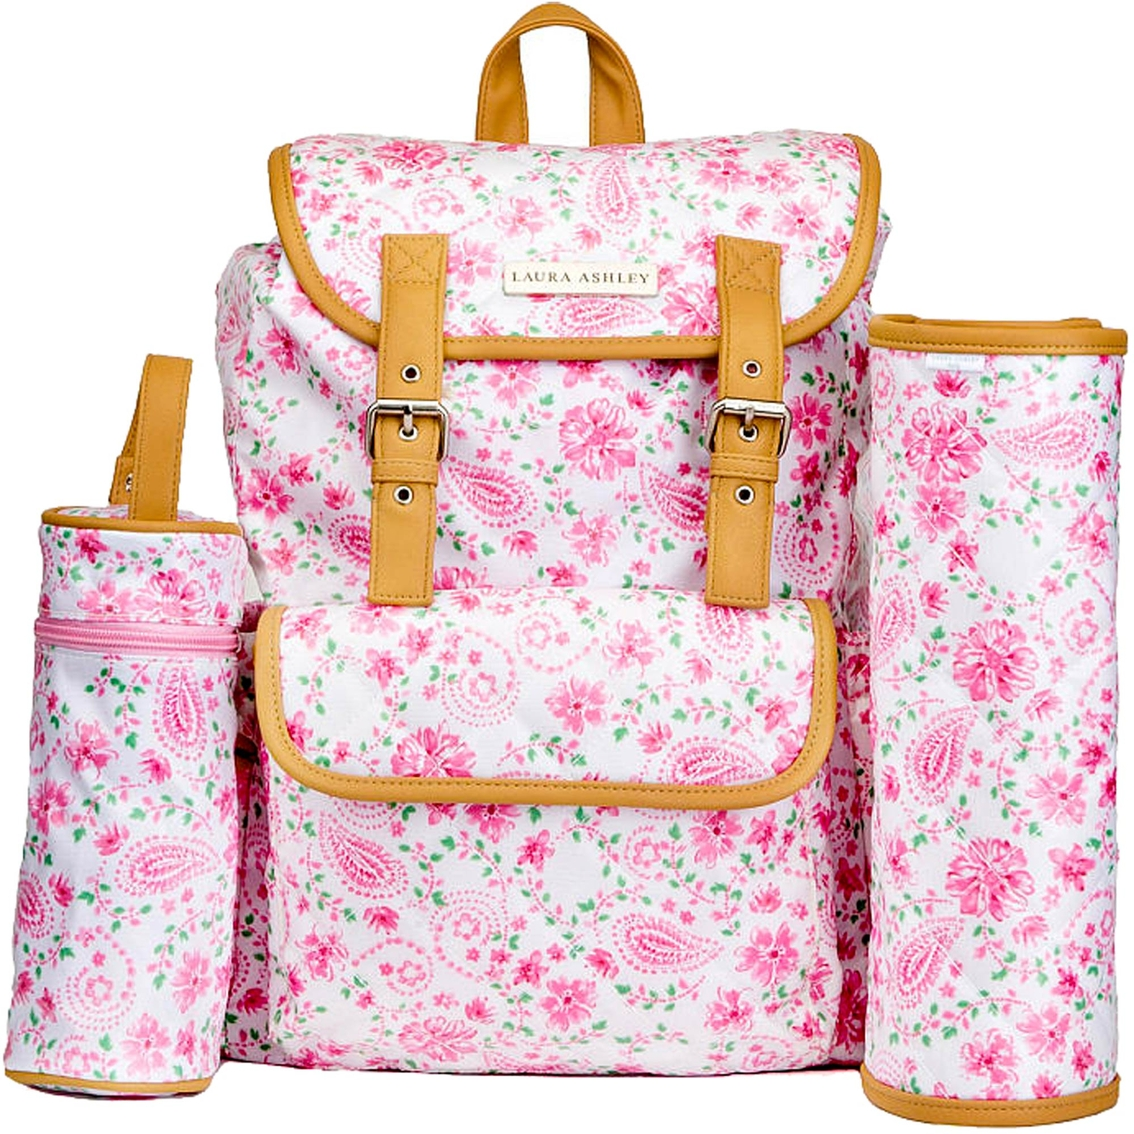 Laura Ashley Diaper Bag Backpack